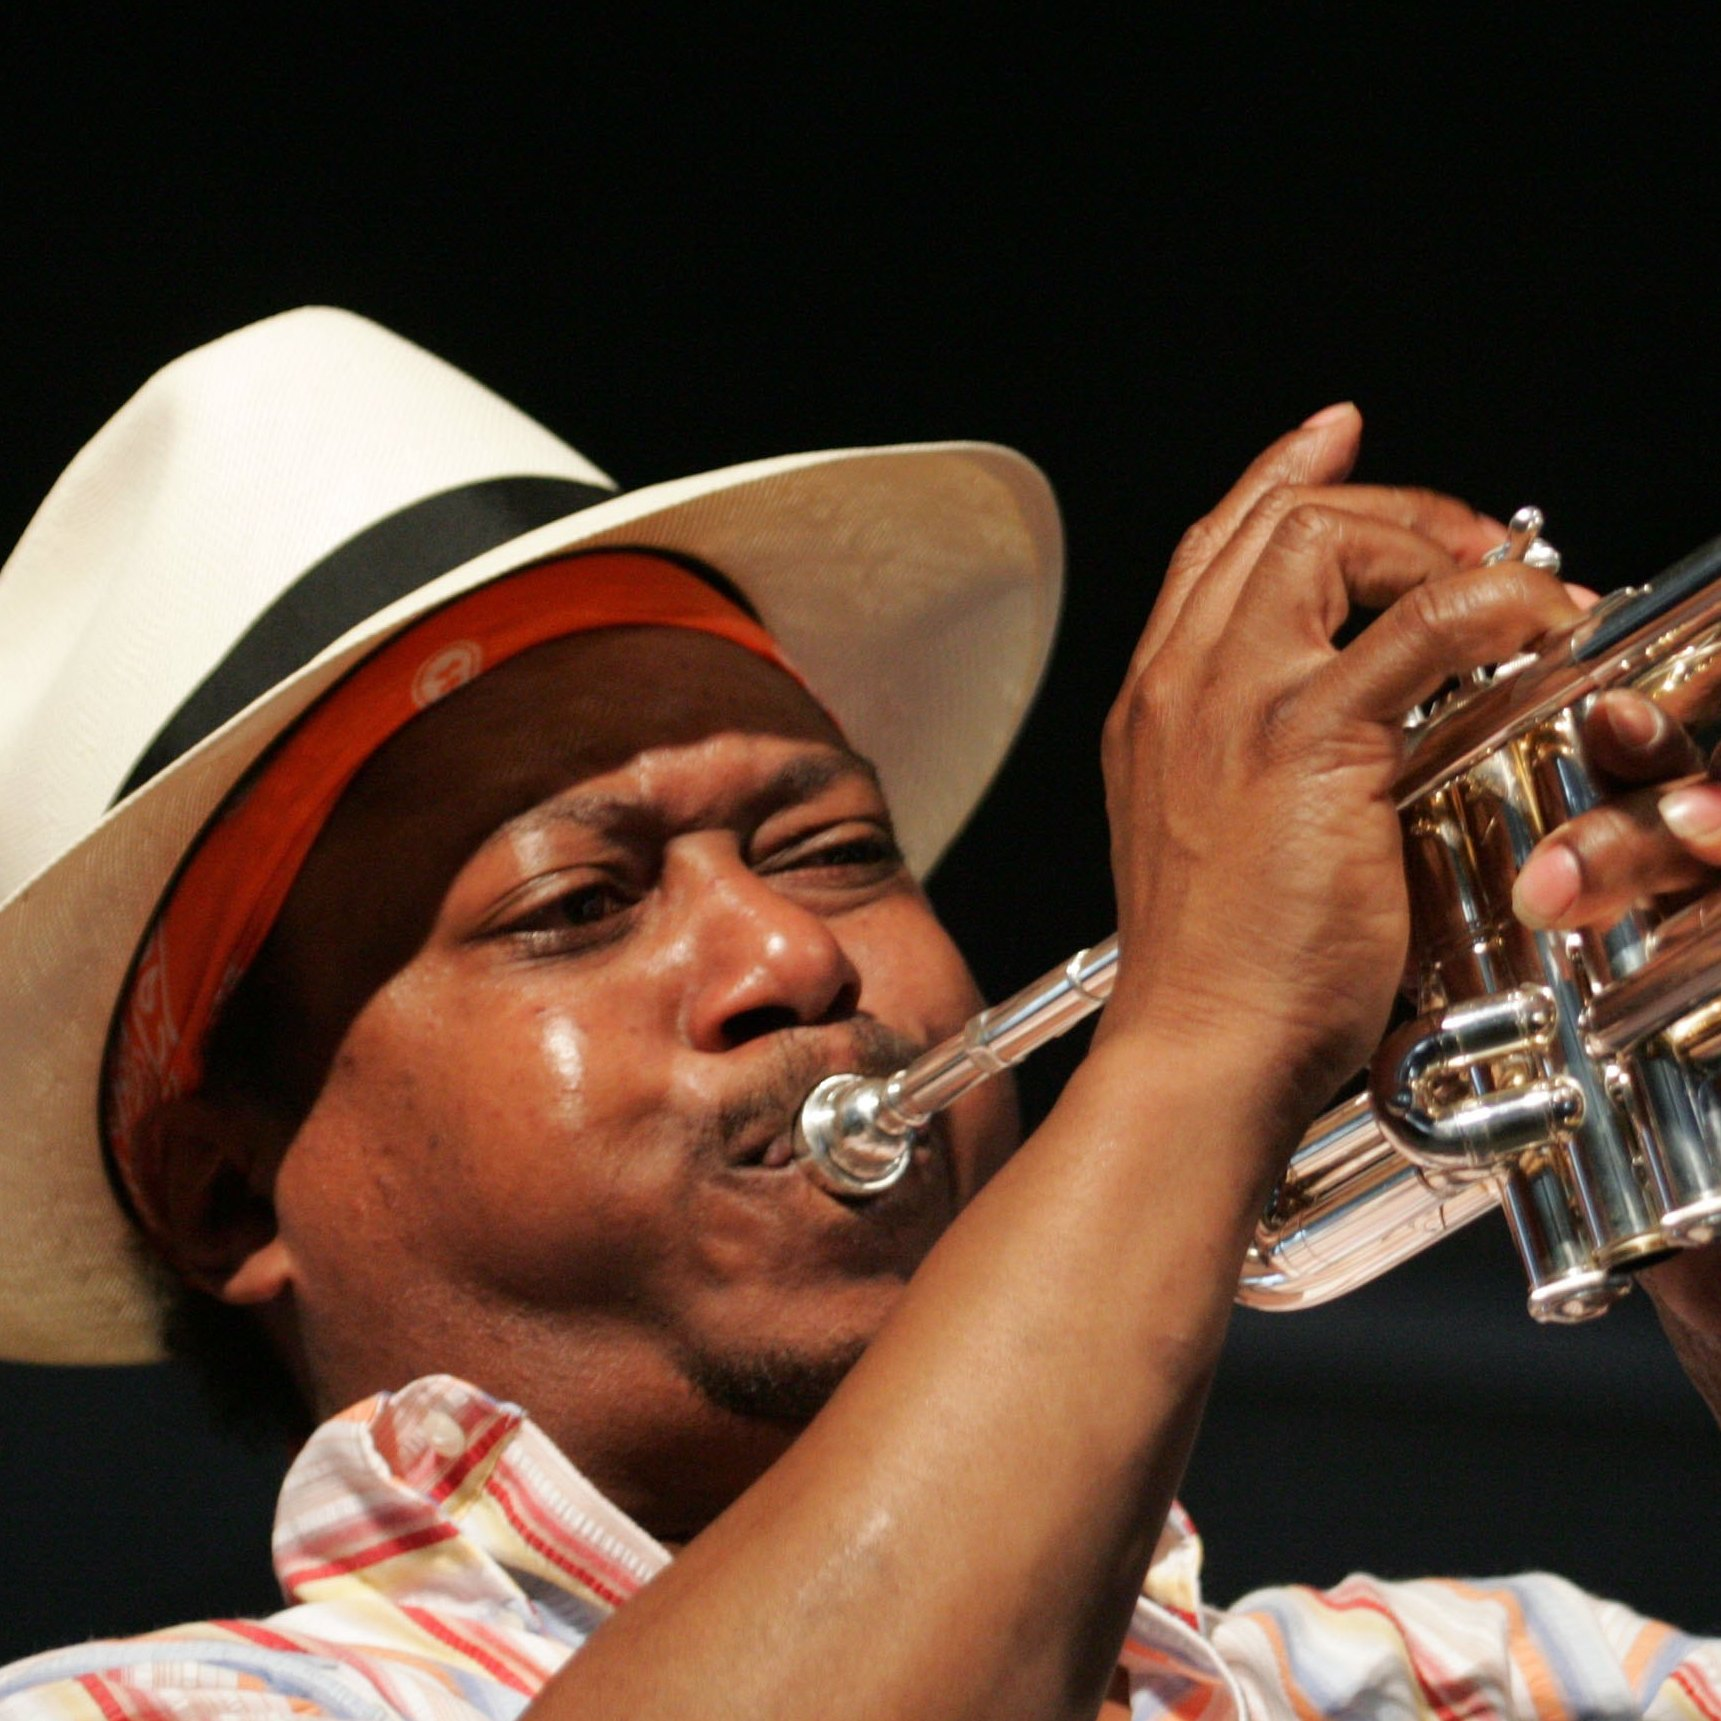 Kermit Ruffins, seen frequently on HBO's Treme, performs around town in New Orleans every week with his band, the BBQ Swingers.